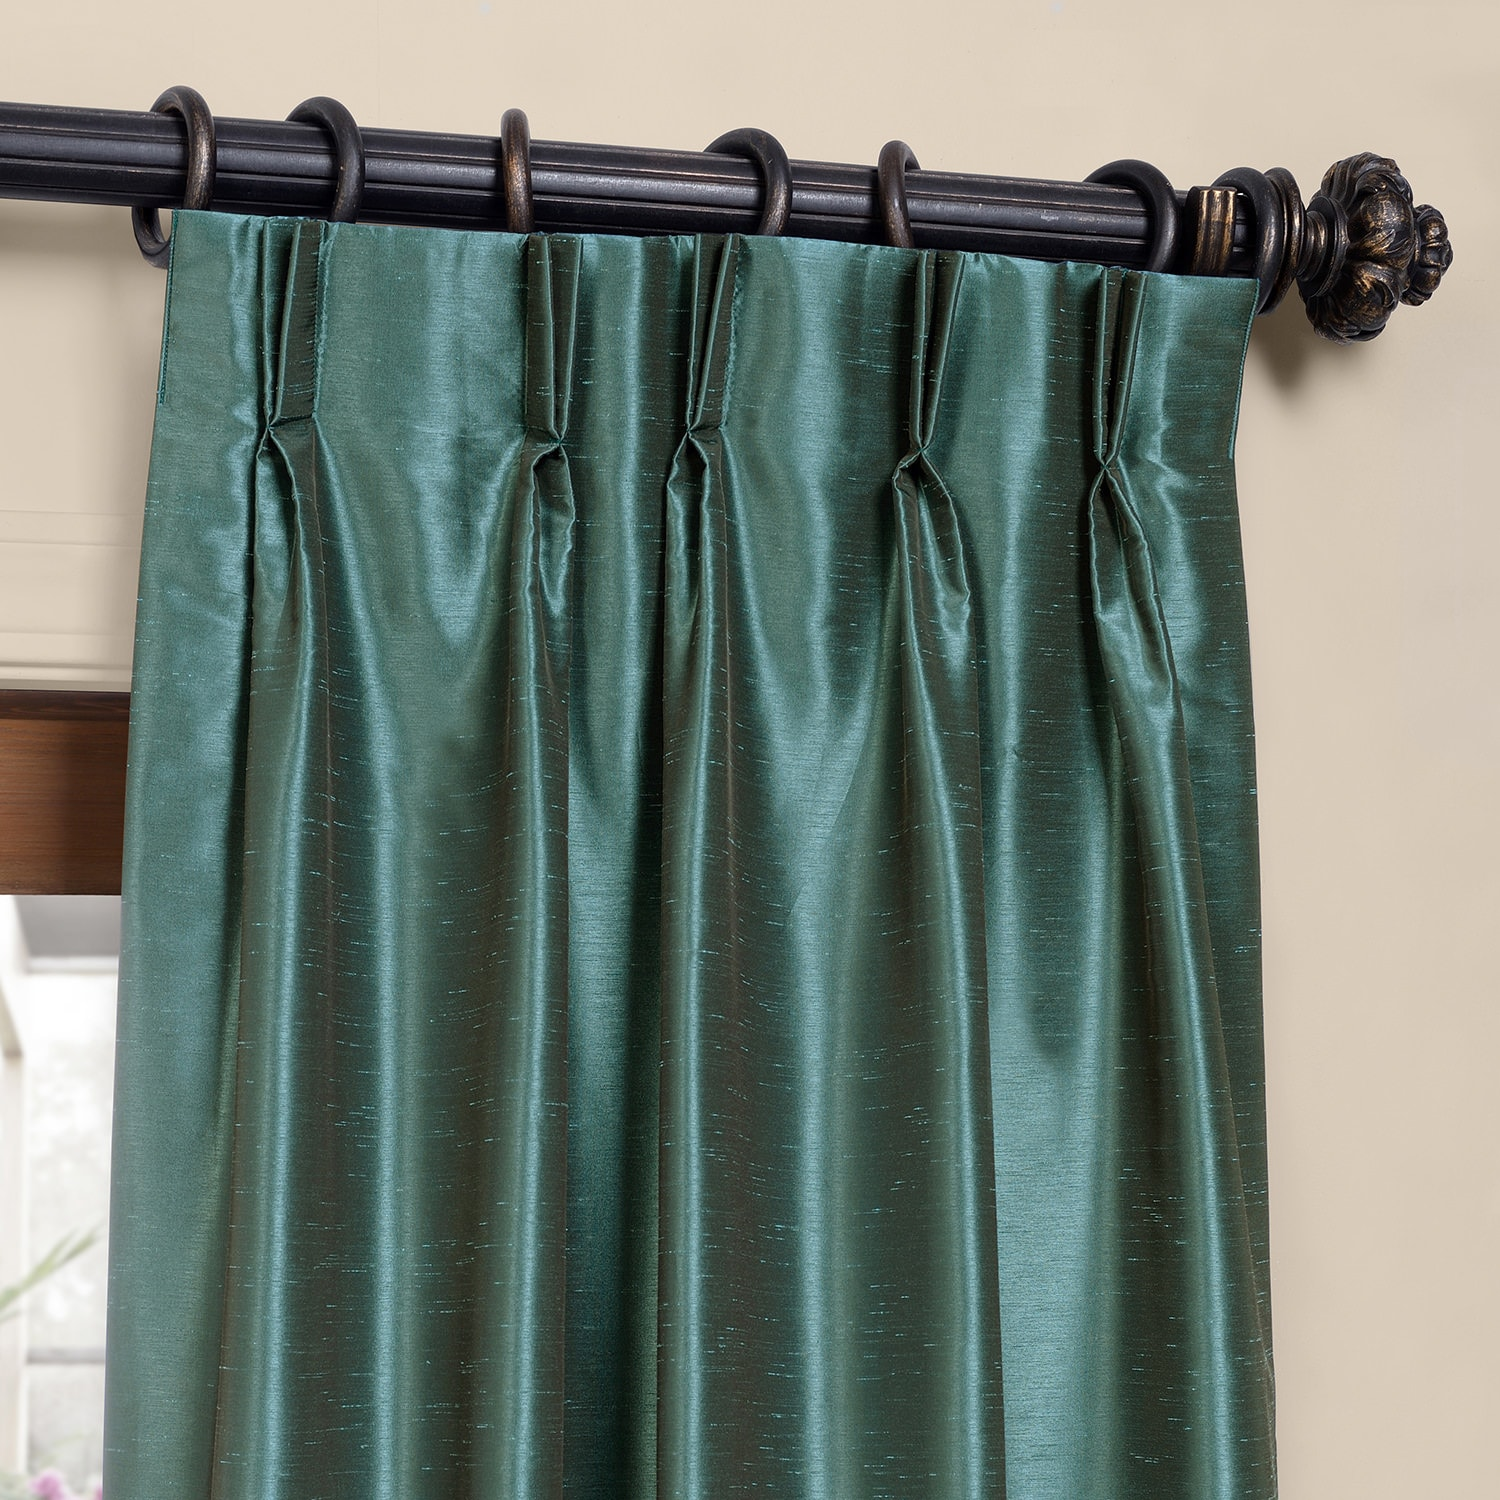 Peacock Blackout Textured Faux Dupioni Pleated Curtain